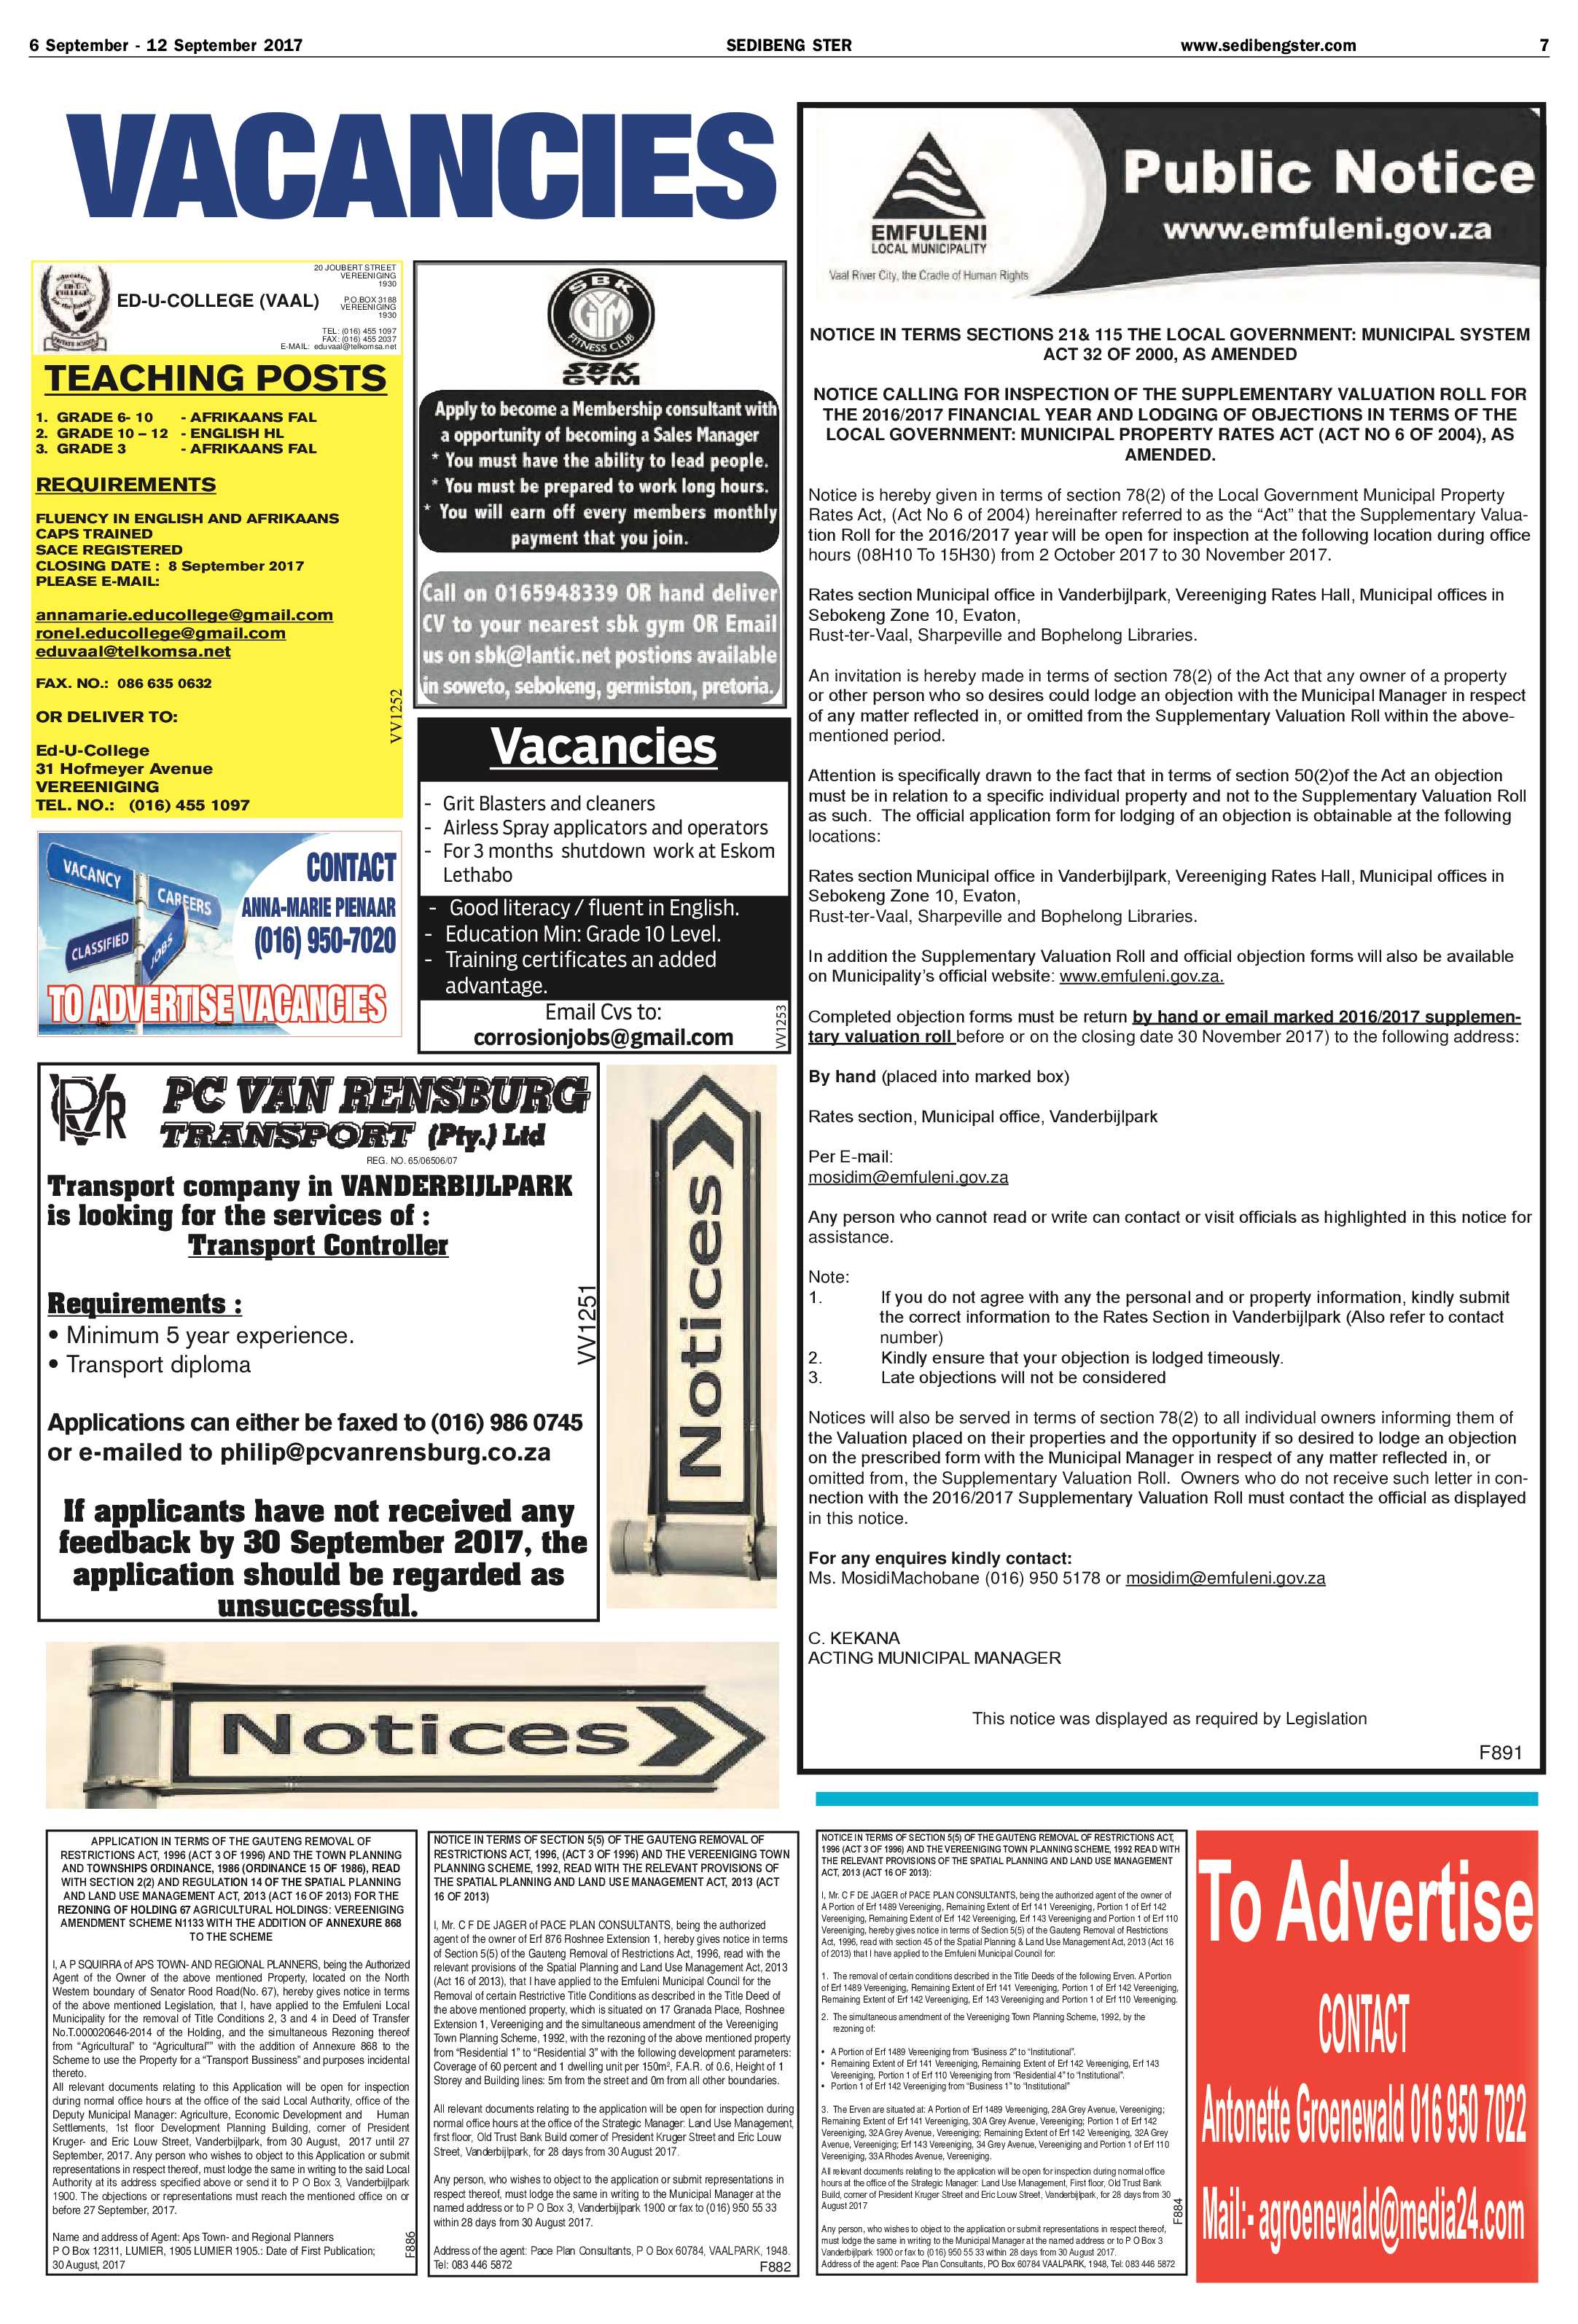 sedibeng-ster-5-12-september-2017-epapers-page-7